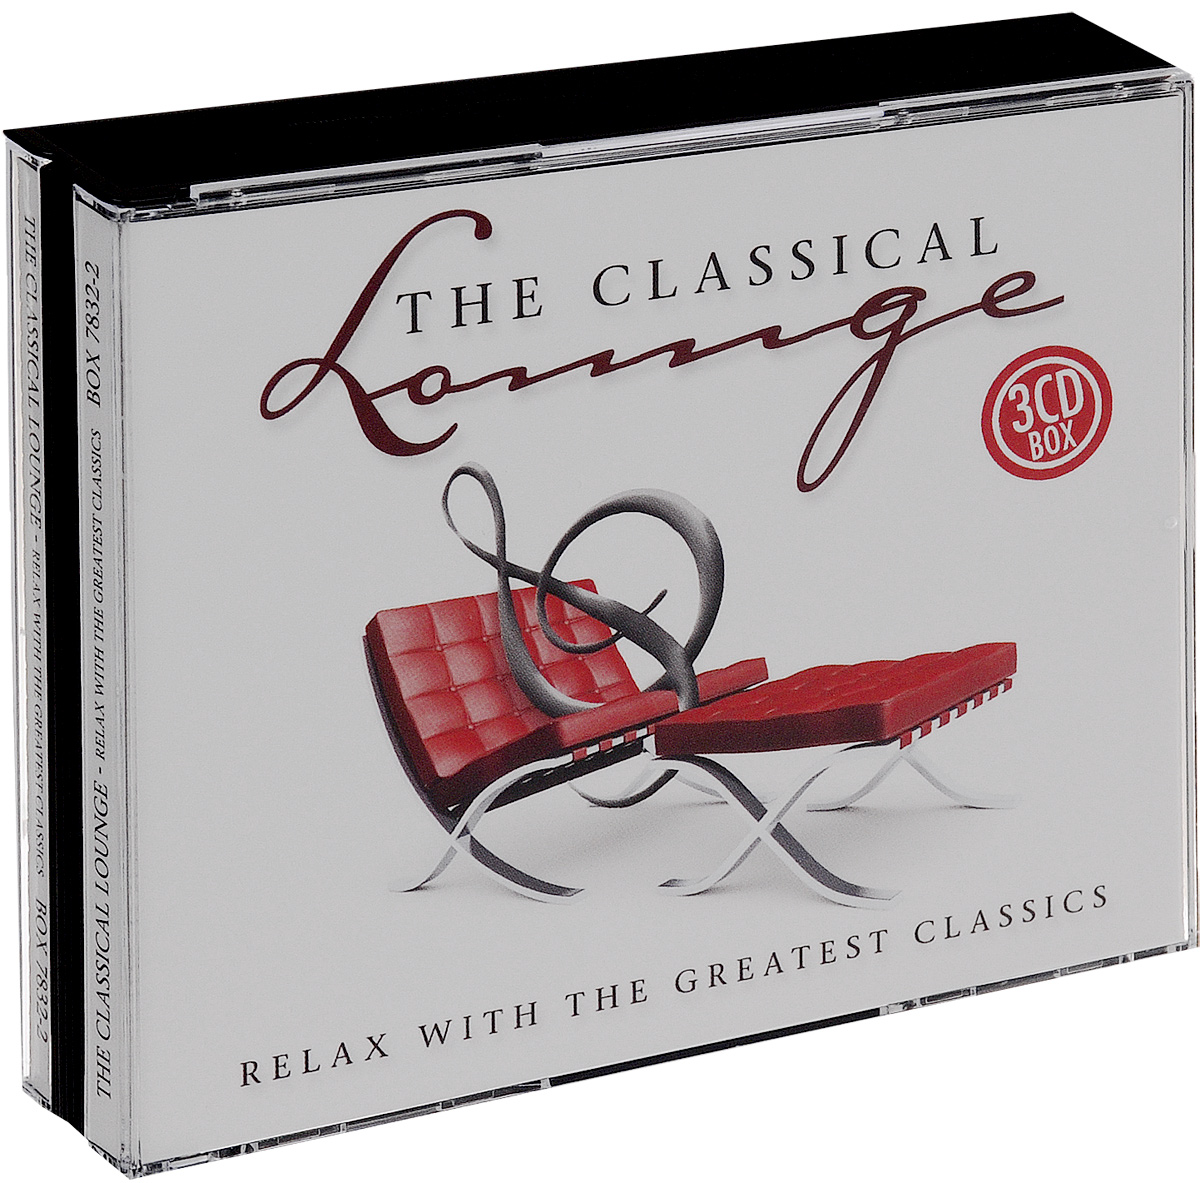 The Classical Lounge. Relax With Greatest Classics (3 CD) футболки и топы m bimbo футболка для мальчика м 17 03